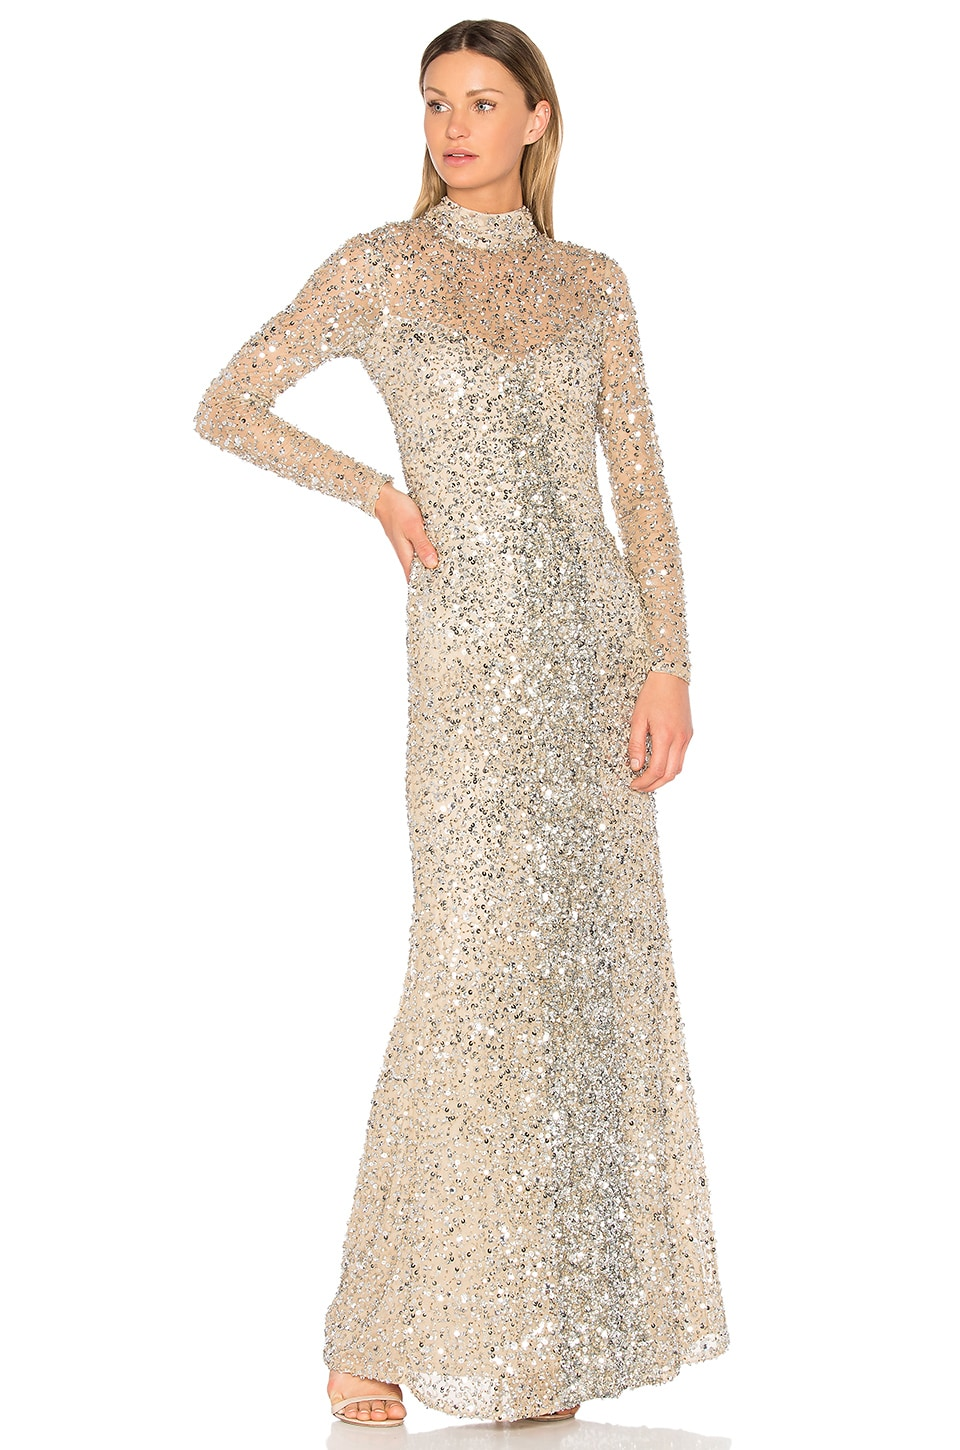 Parker Black Leandra Gown in Silver